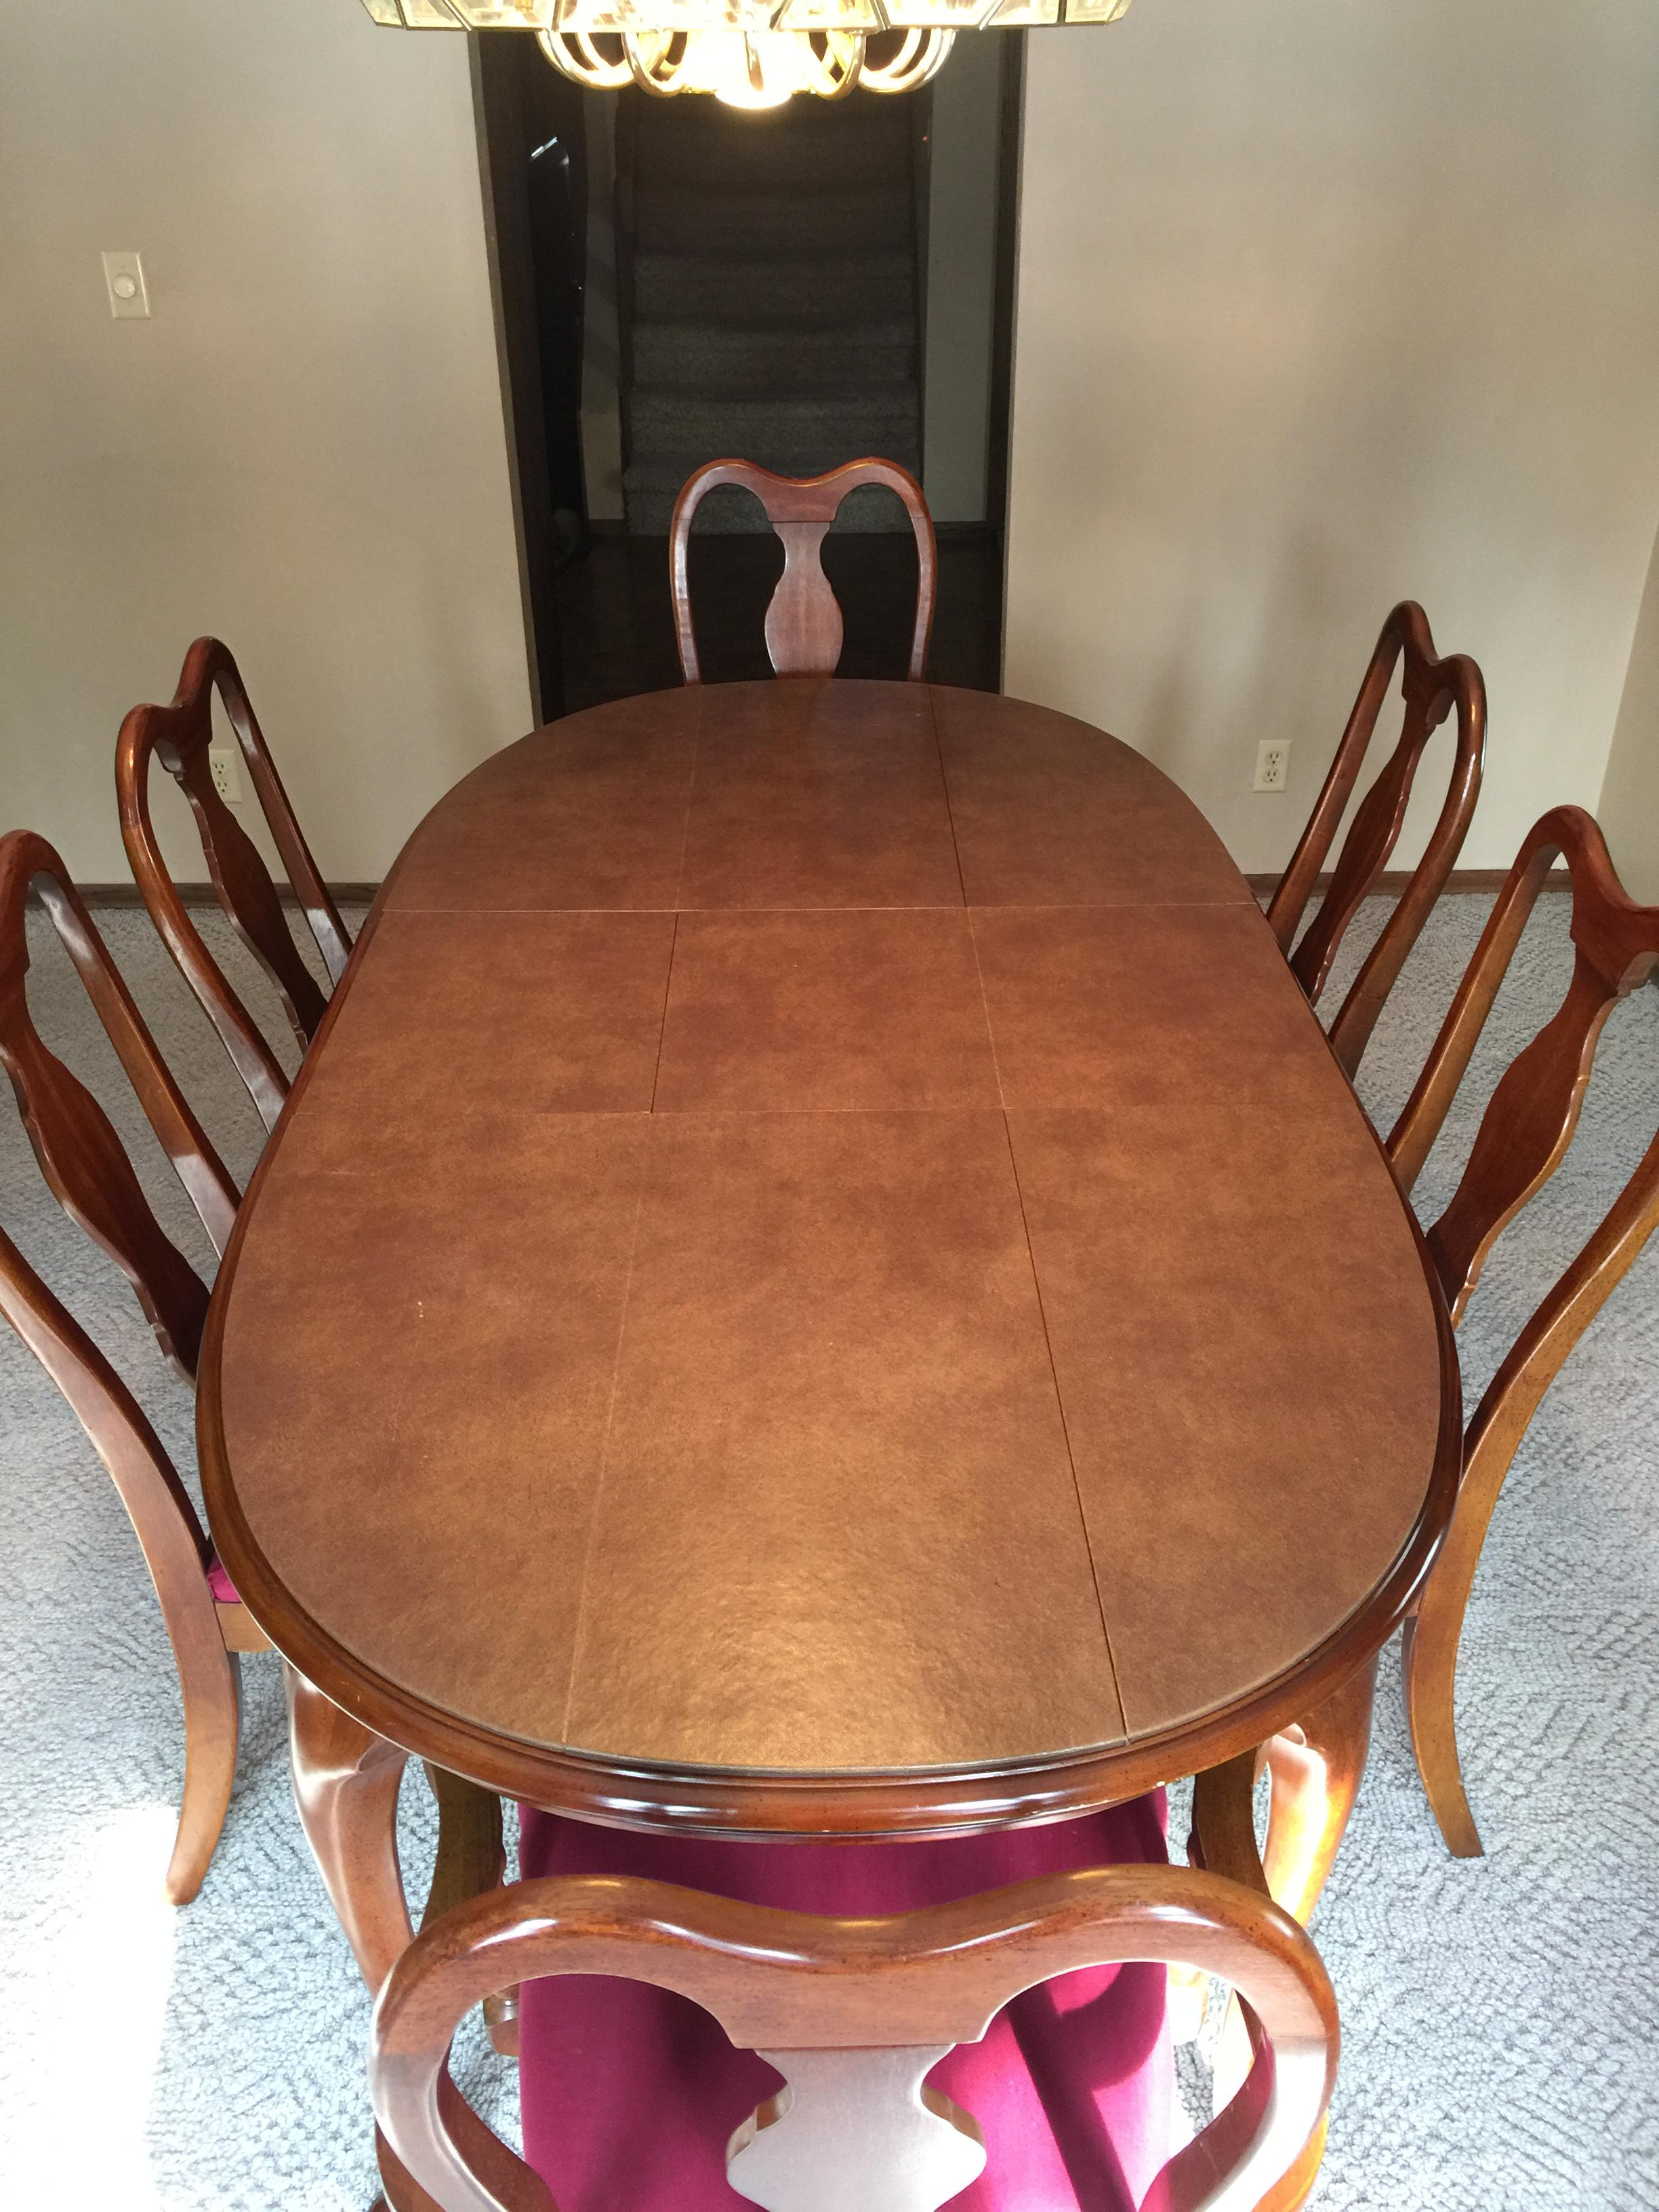 This Formal Dining Set Was Made By Henry Link Corp Of Lexington, NC,  Distributed